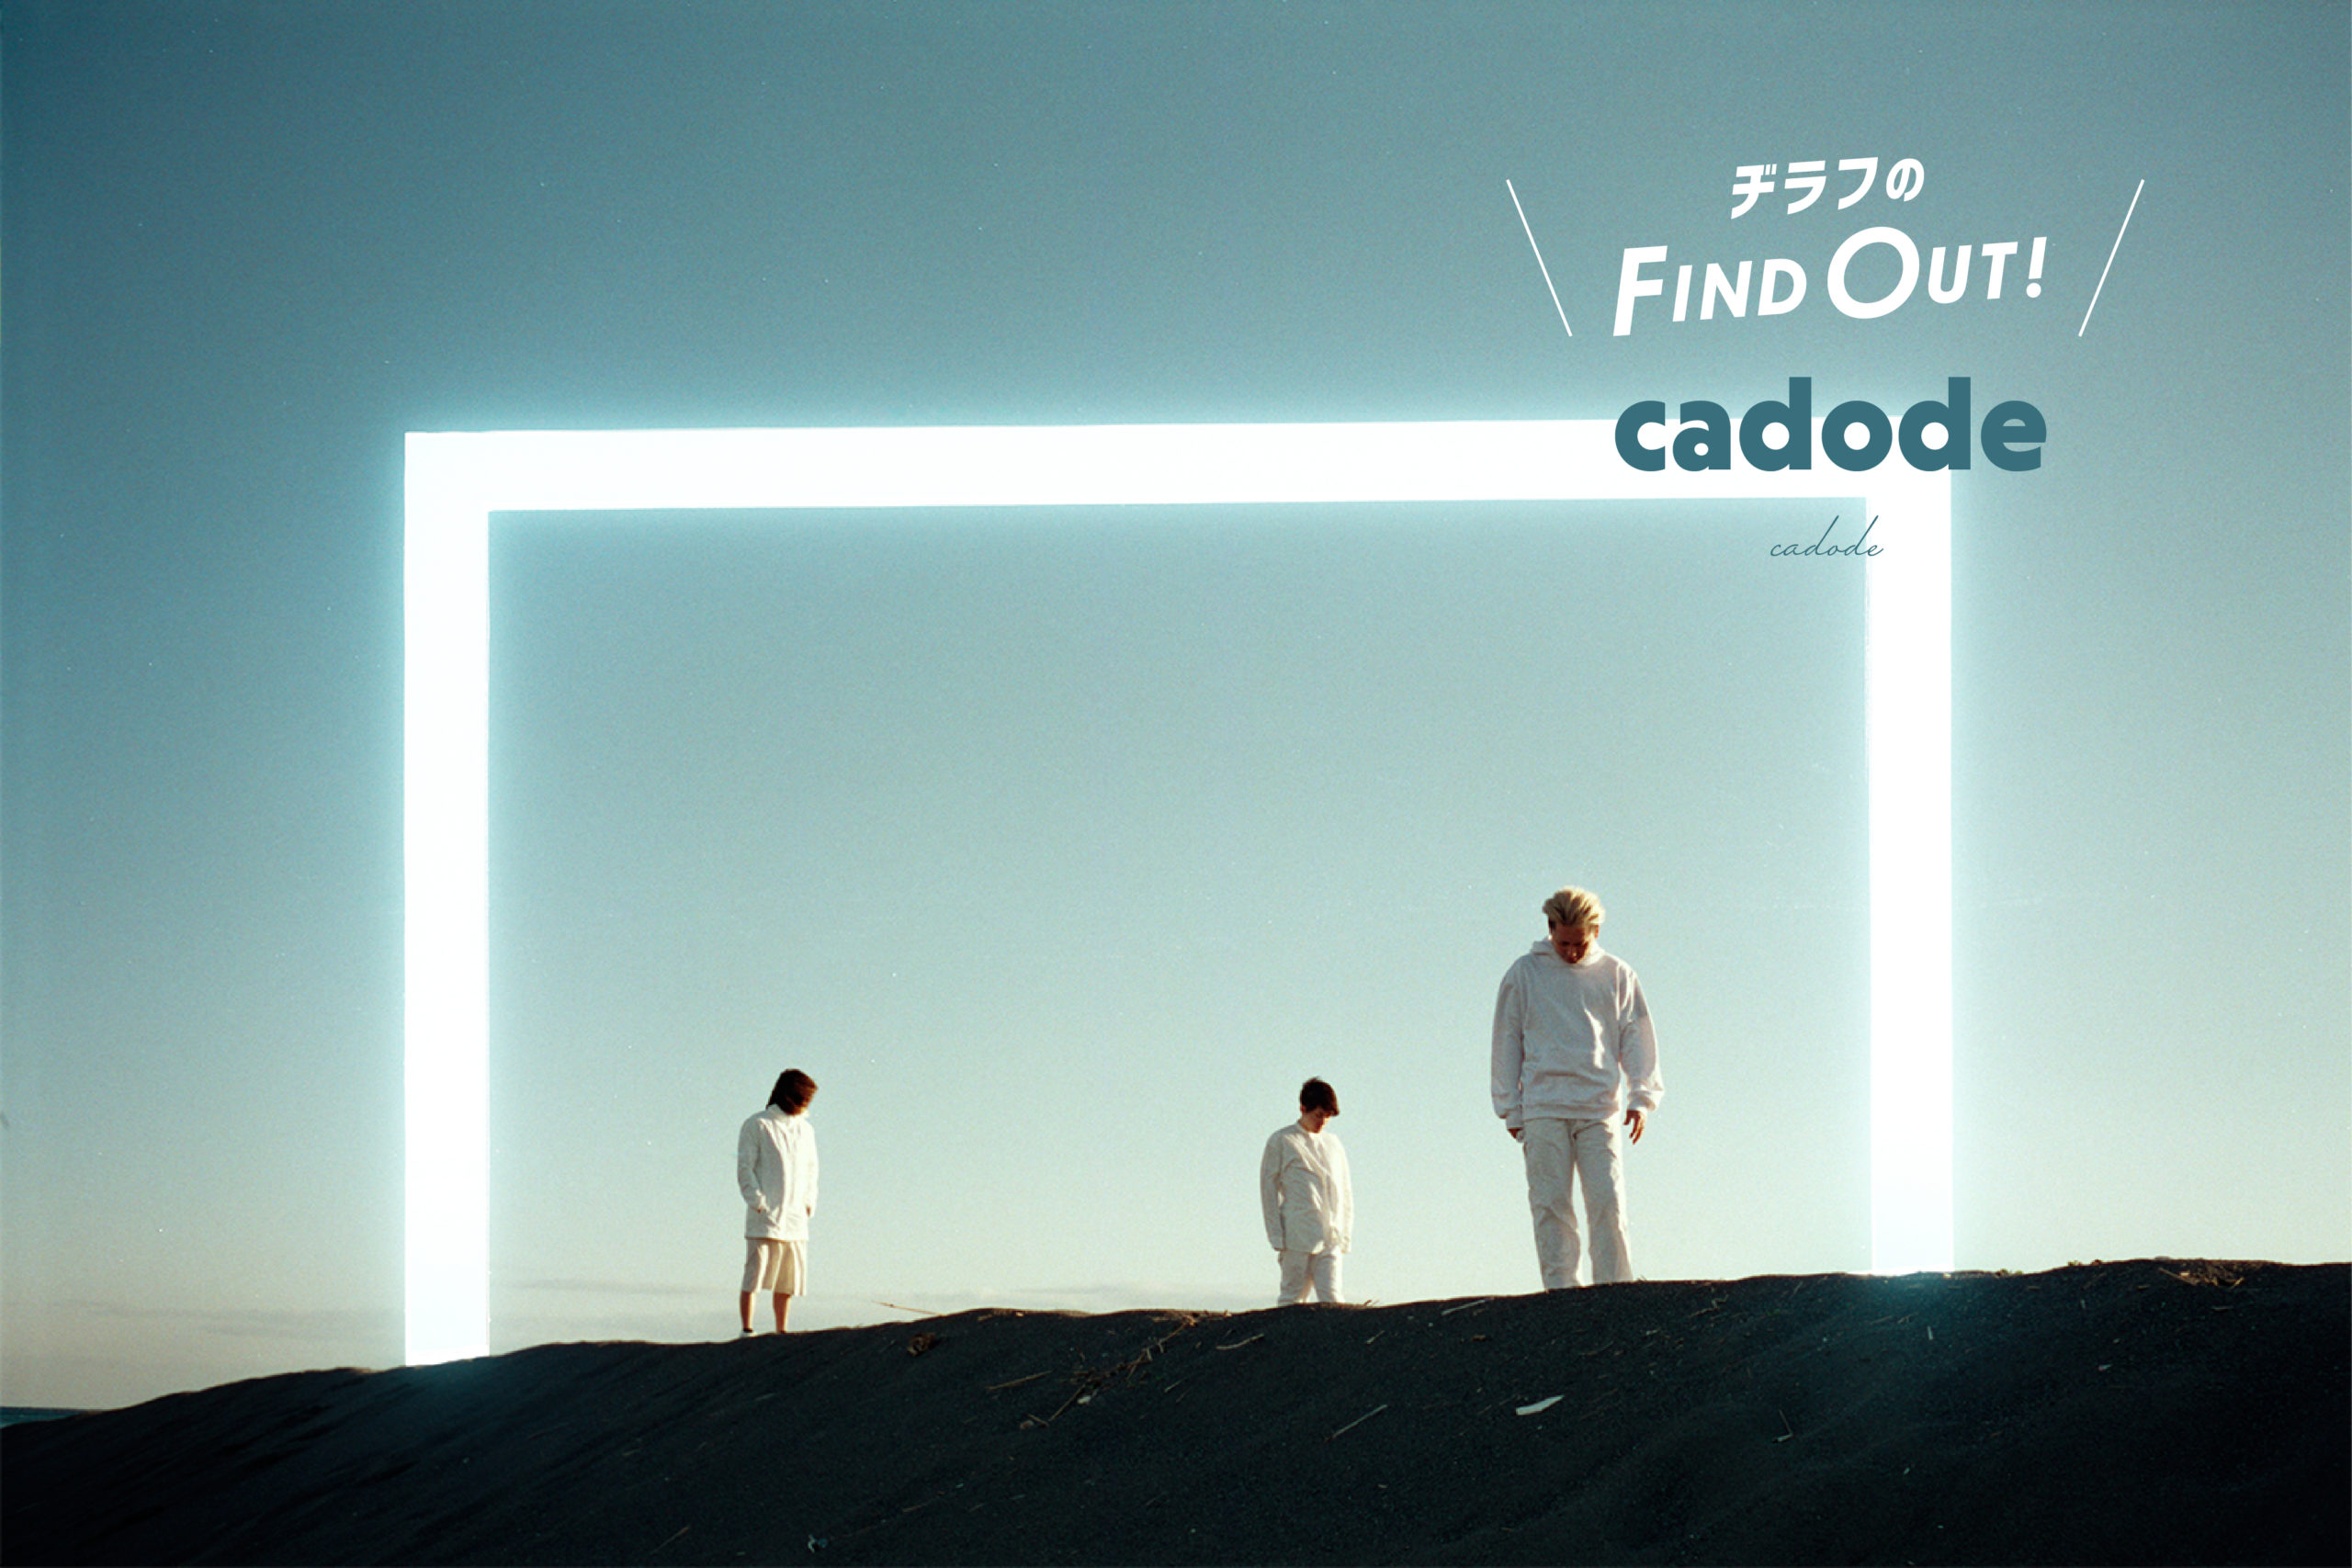 【cadode】とぎすまされた美意識で音を紡ぐ、音楽プロダクト・cadode